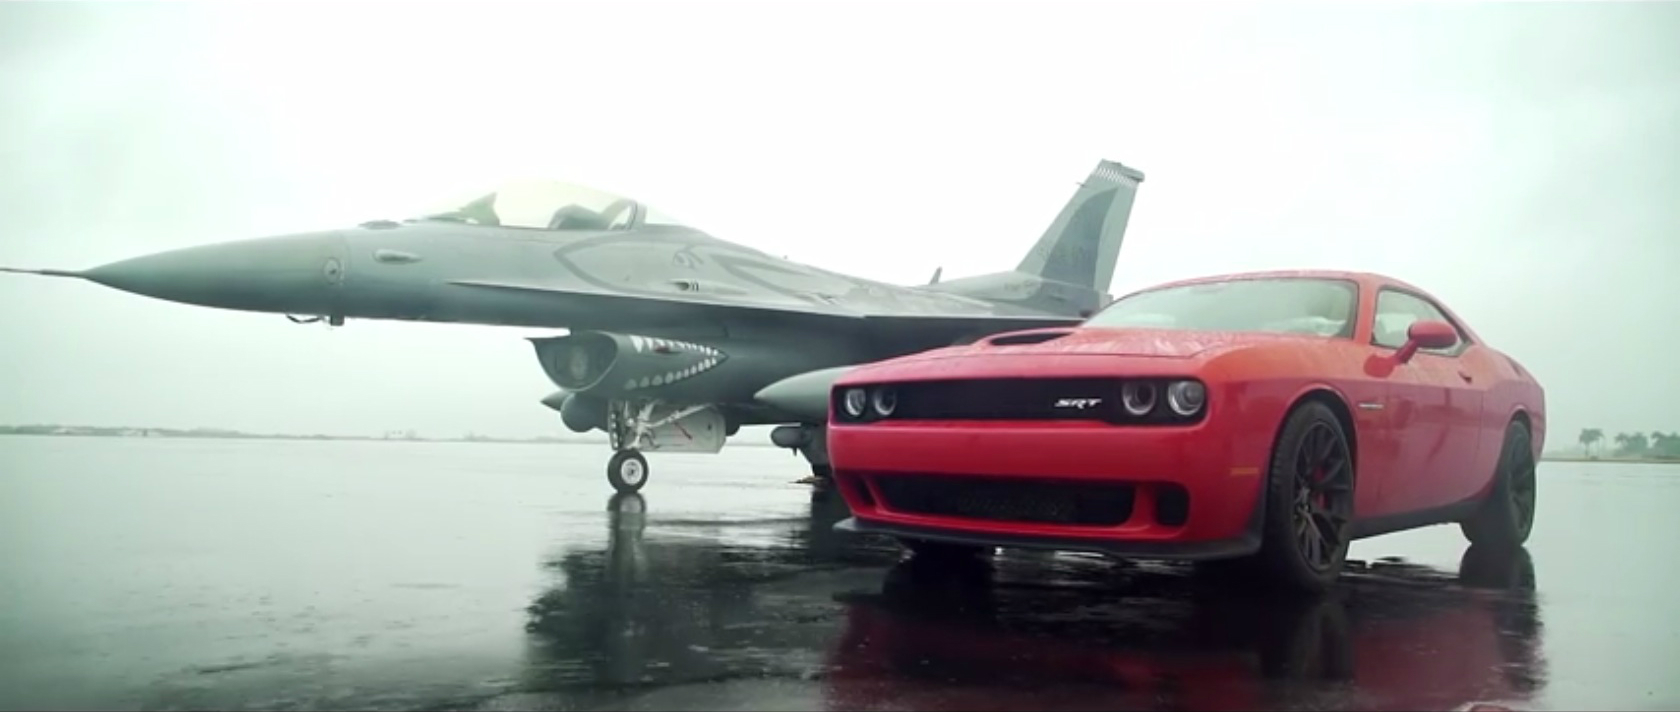 Challenger Vs Challenger Hellcat >> 2015 Dodge Challenger SRT Hellcat Drag Races F16 Fighting Falcon - autoevolution